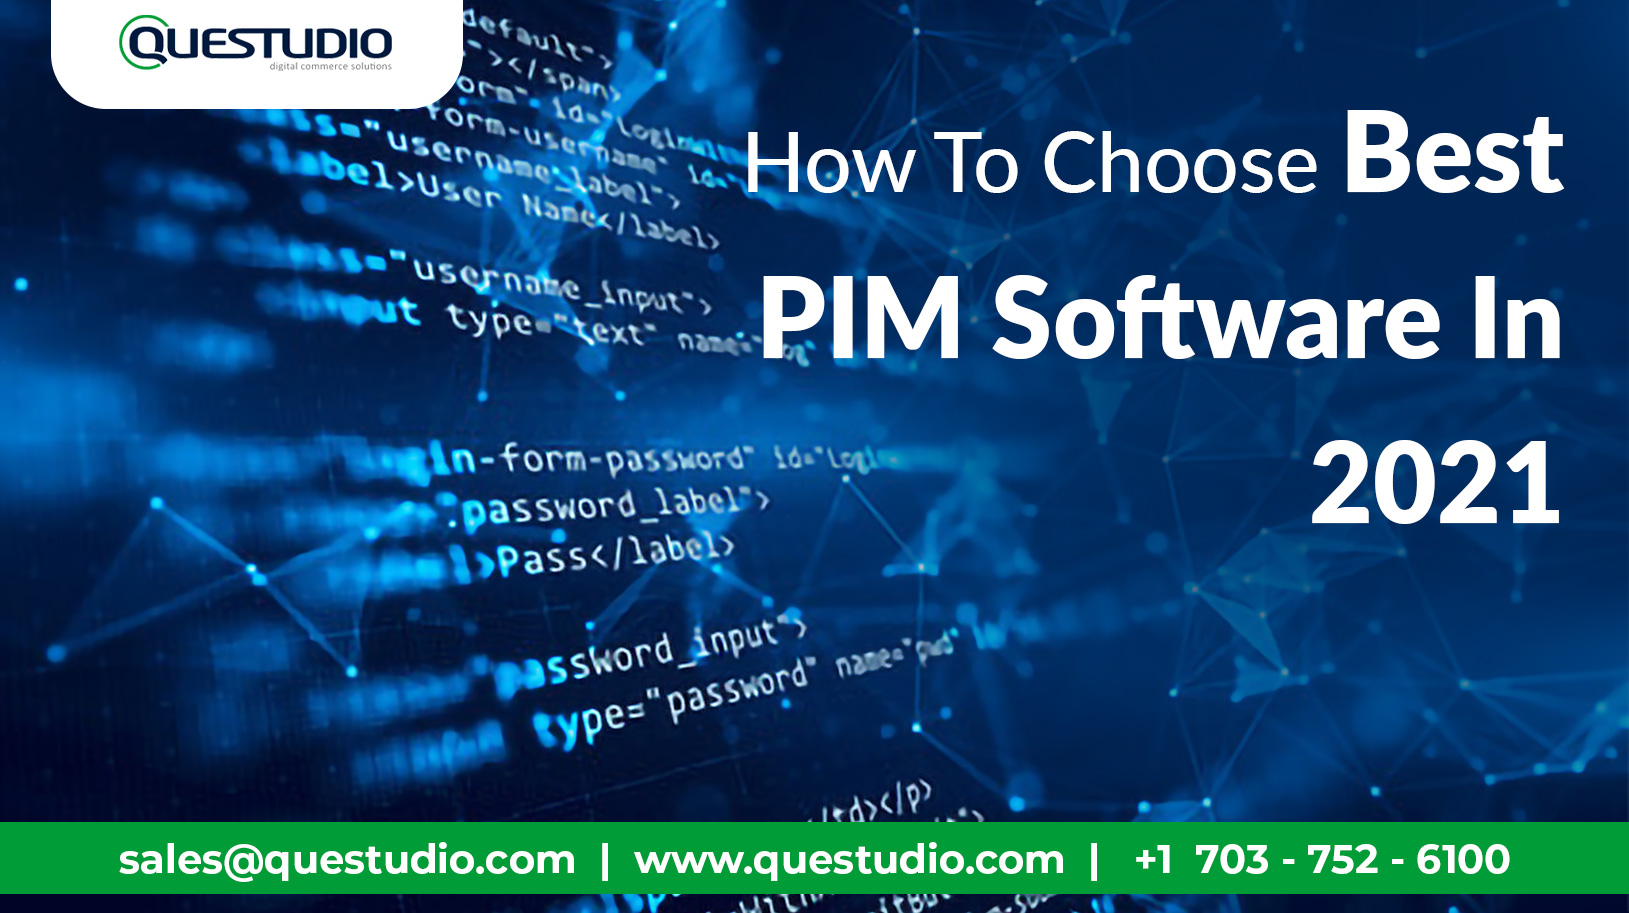 How To Choose Best PIM Software In 2021